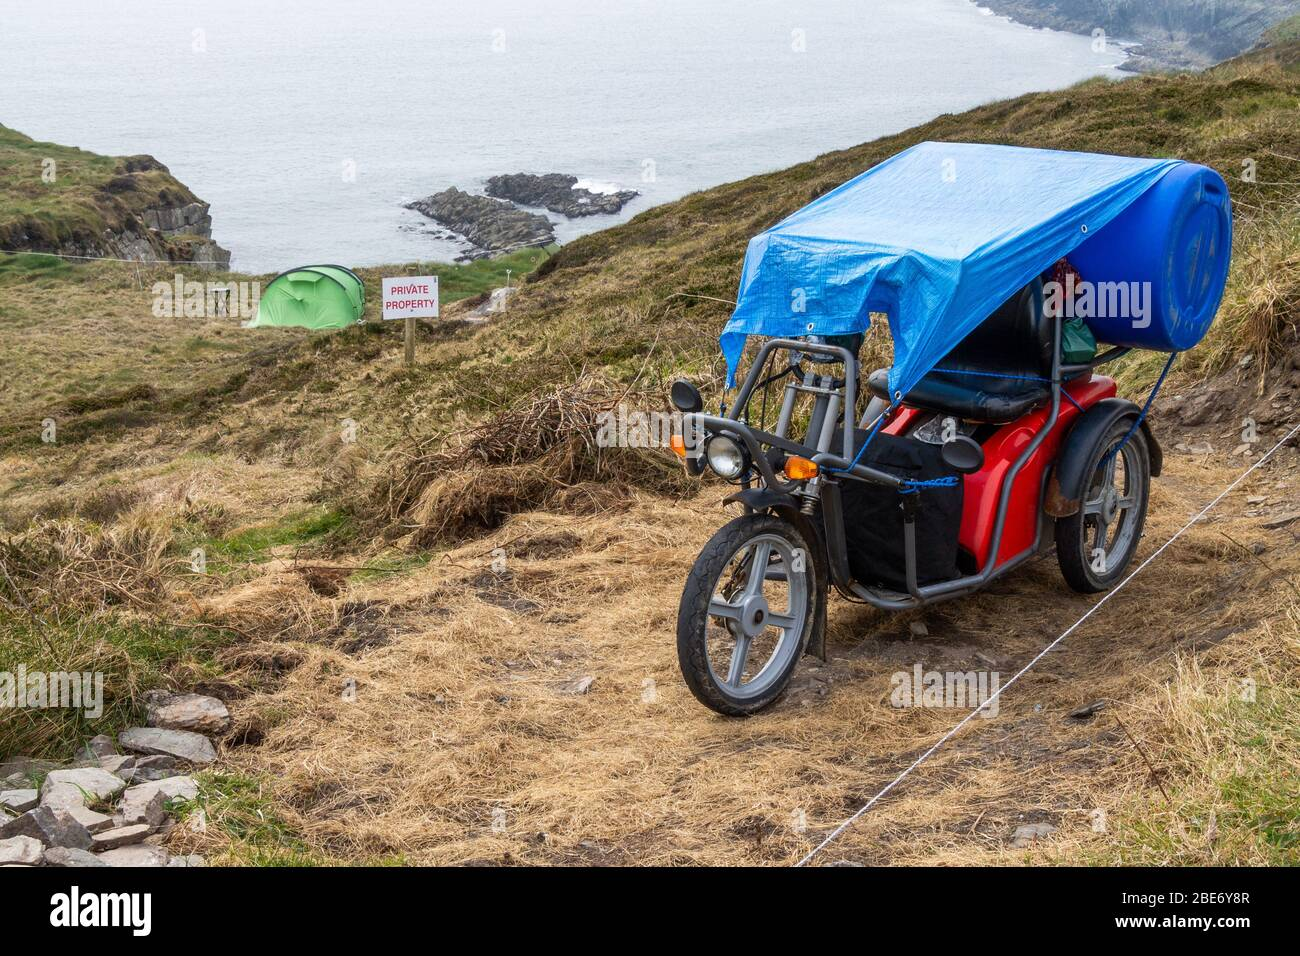 electric-mobility-scooter-with-a-tent-on-cliff-top-ireland-west-cork-2BE6Y8R.jpg